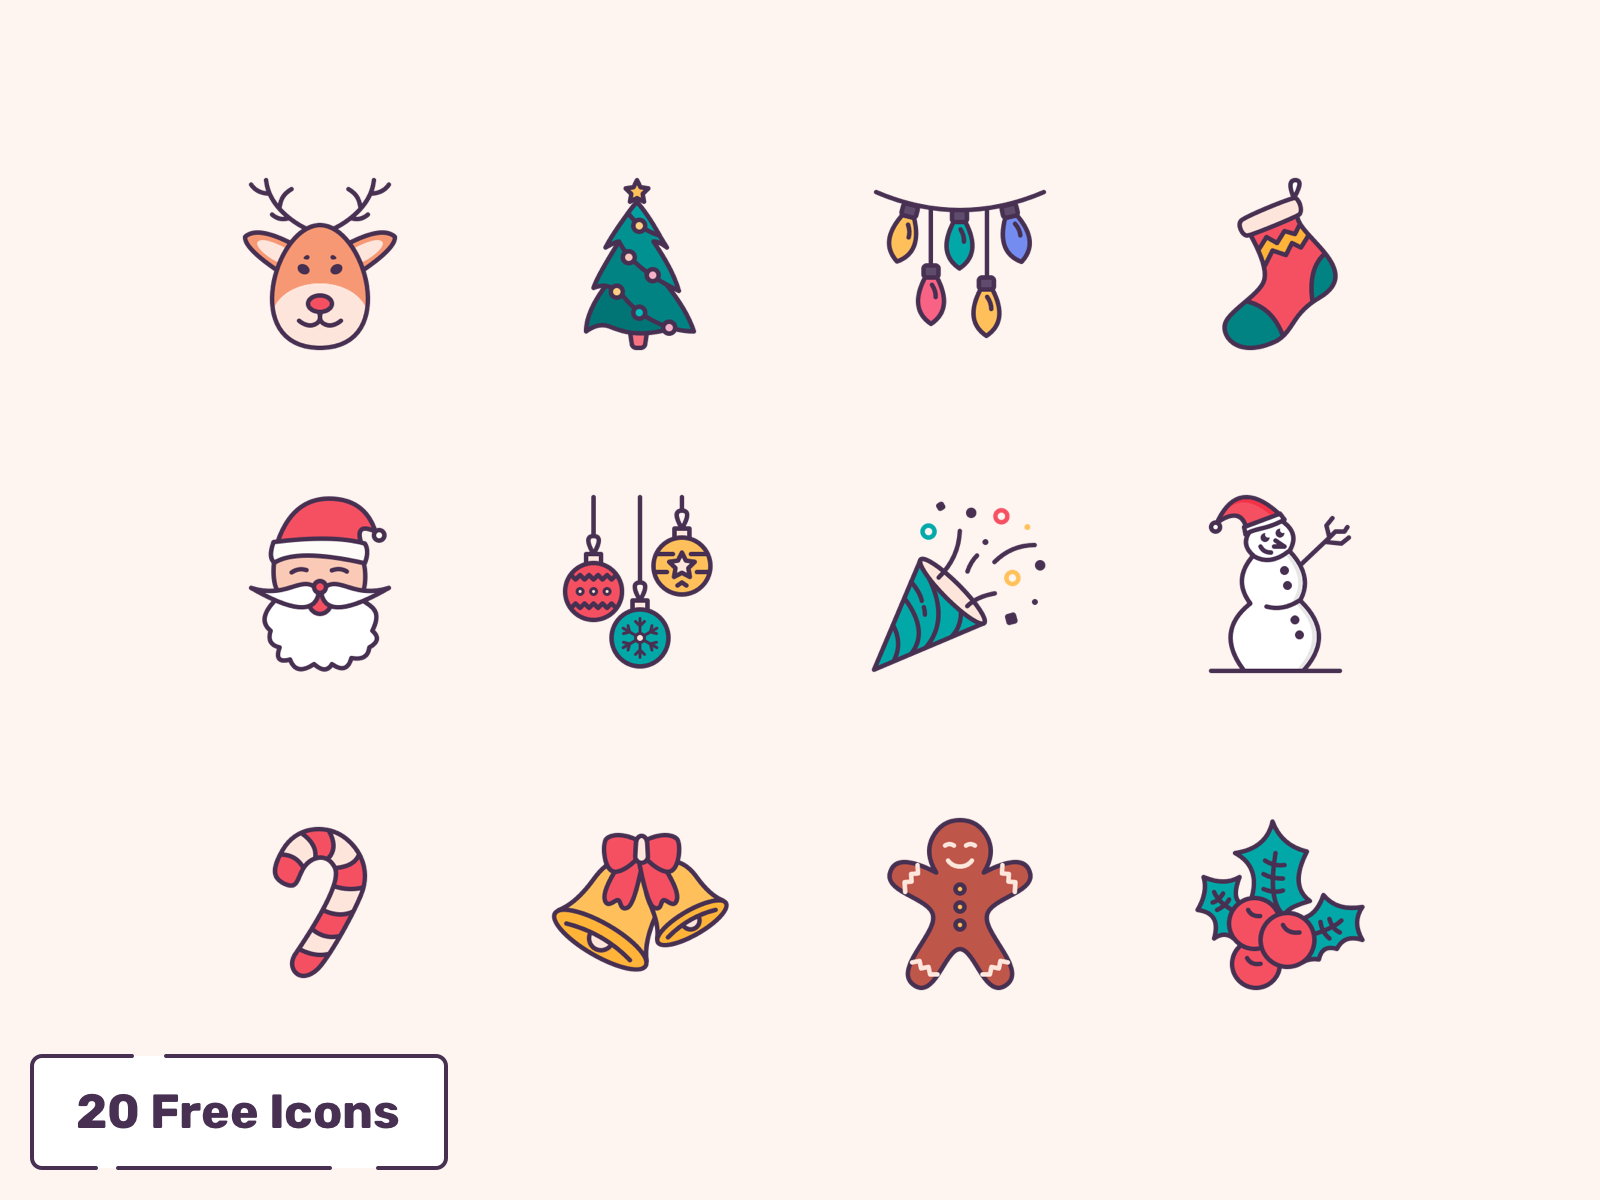 Free 20 Christmas Icons cover image